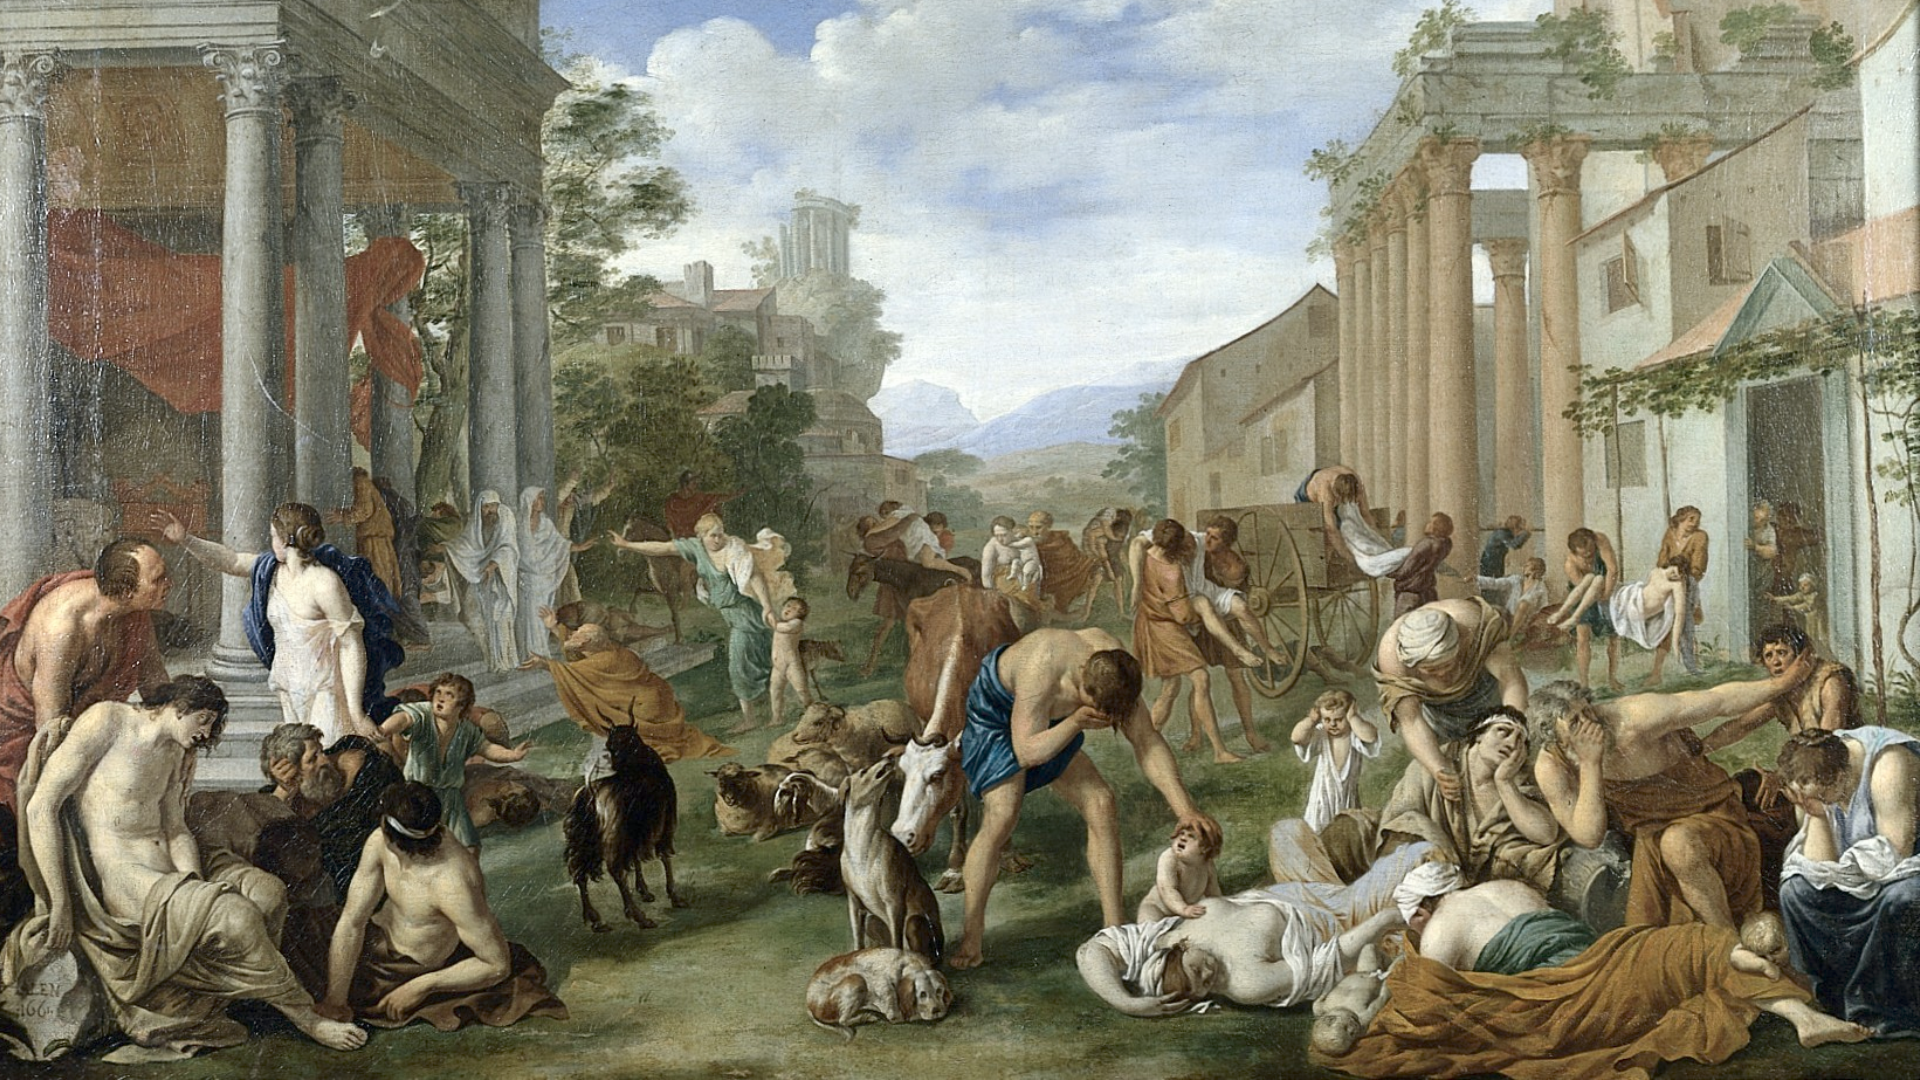 Antonine: The Plague of Galen And The Fall of Rome